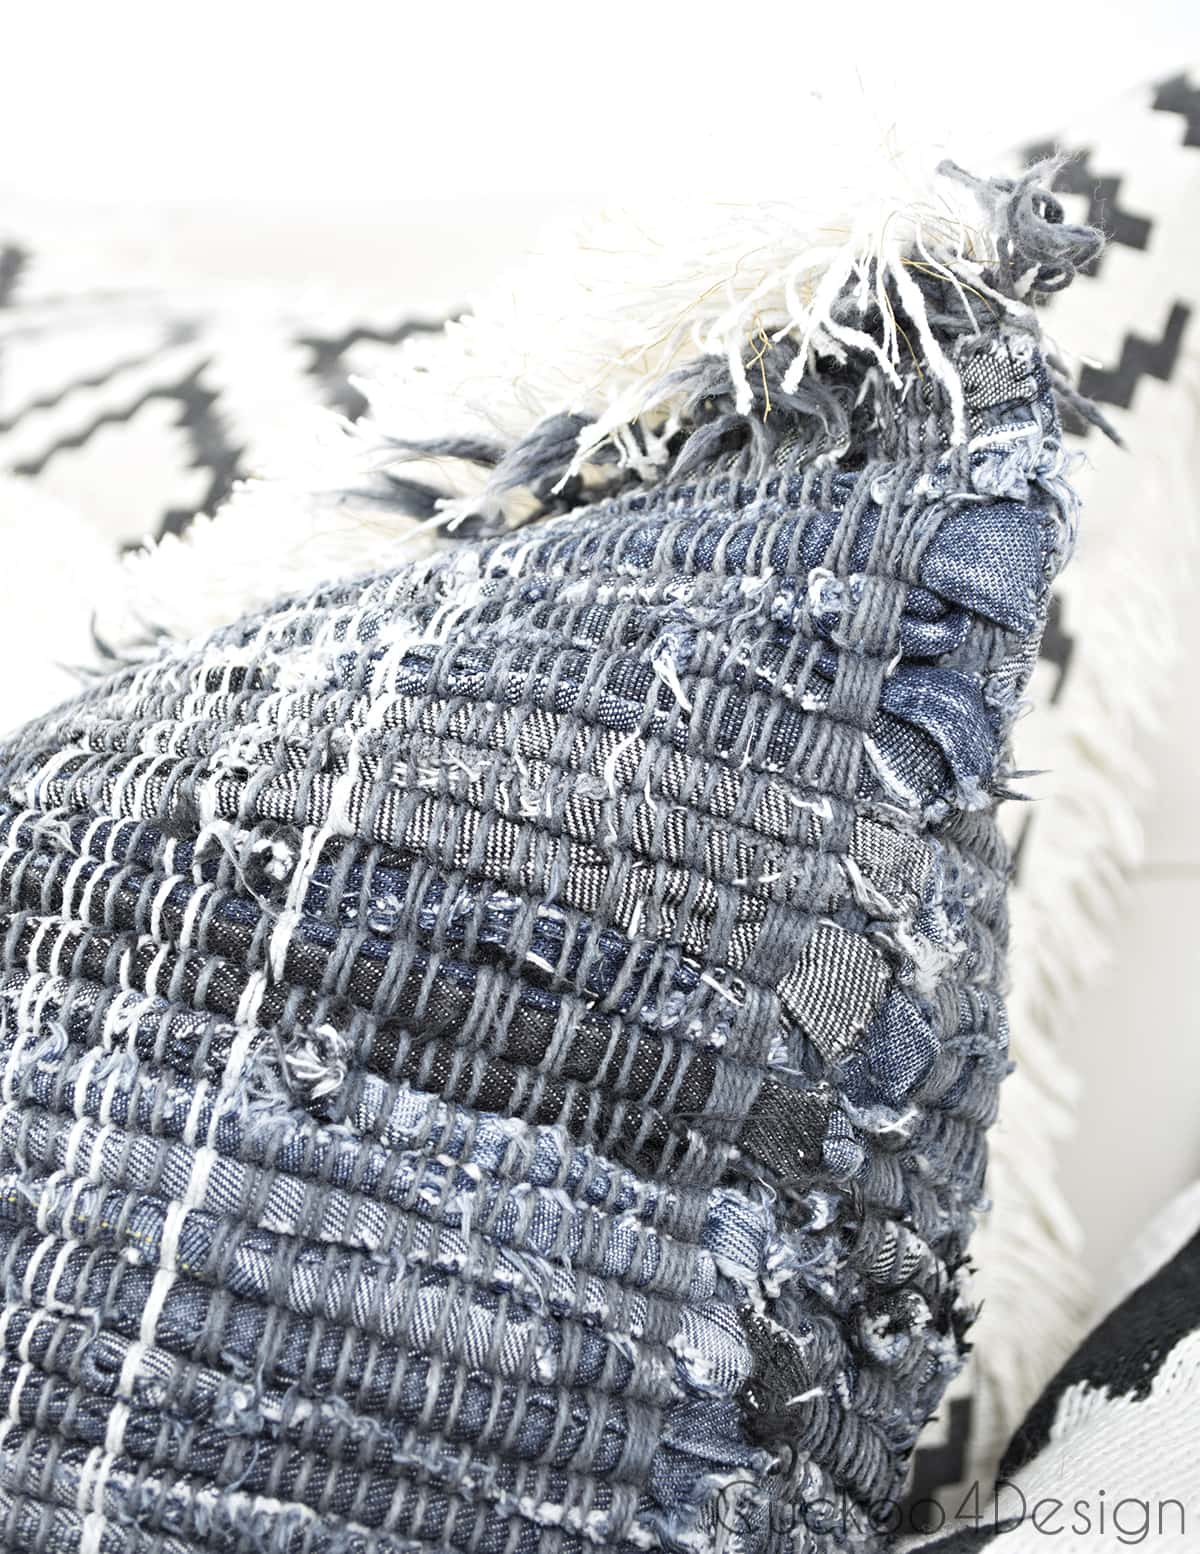 finished boho jeans DIY pillow covers with brush fringe trim